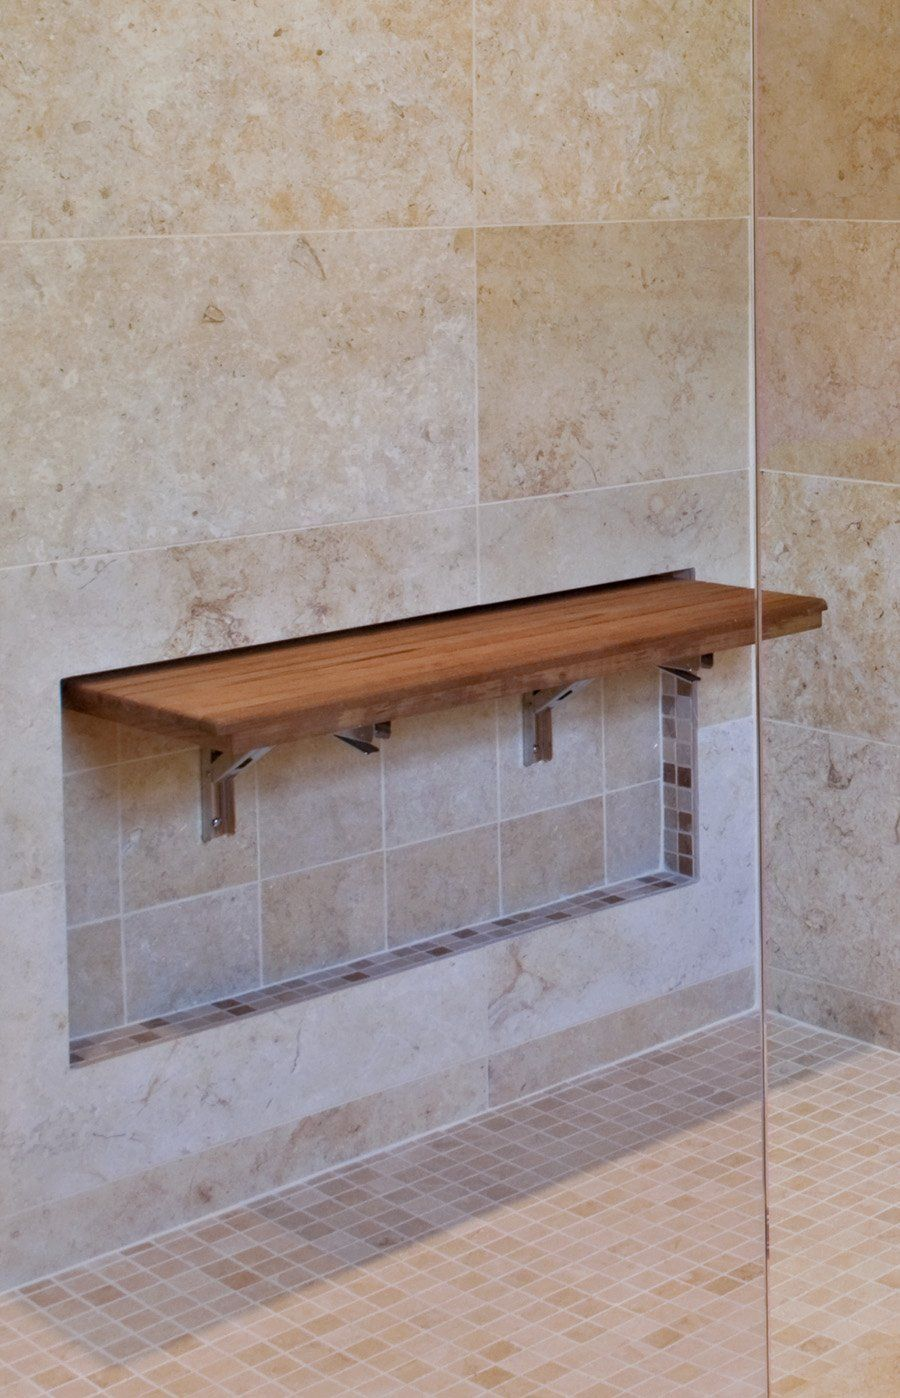 Teak Wall Mount Fold Down Shower Bench Seat 30 X 12 5 Shower And Bath Safety